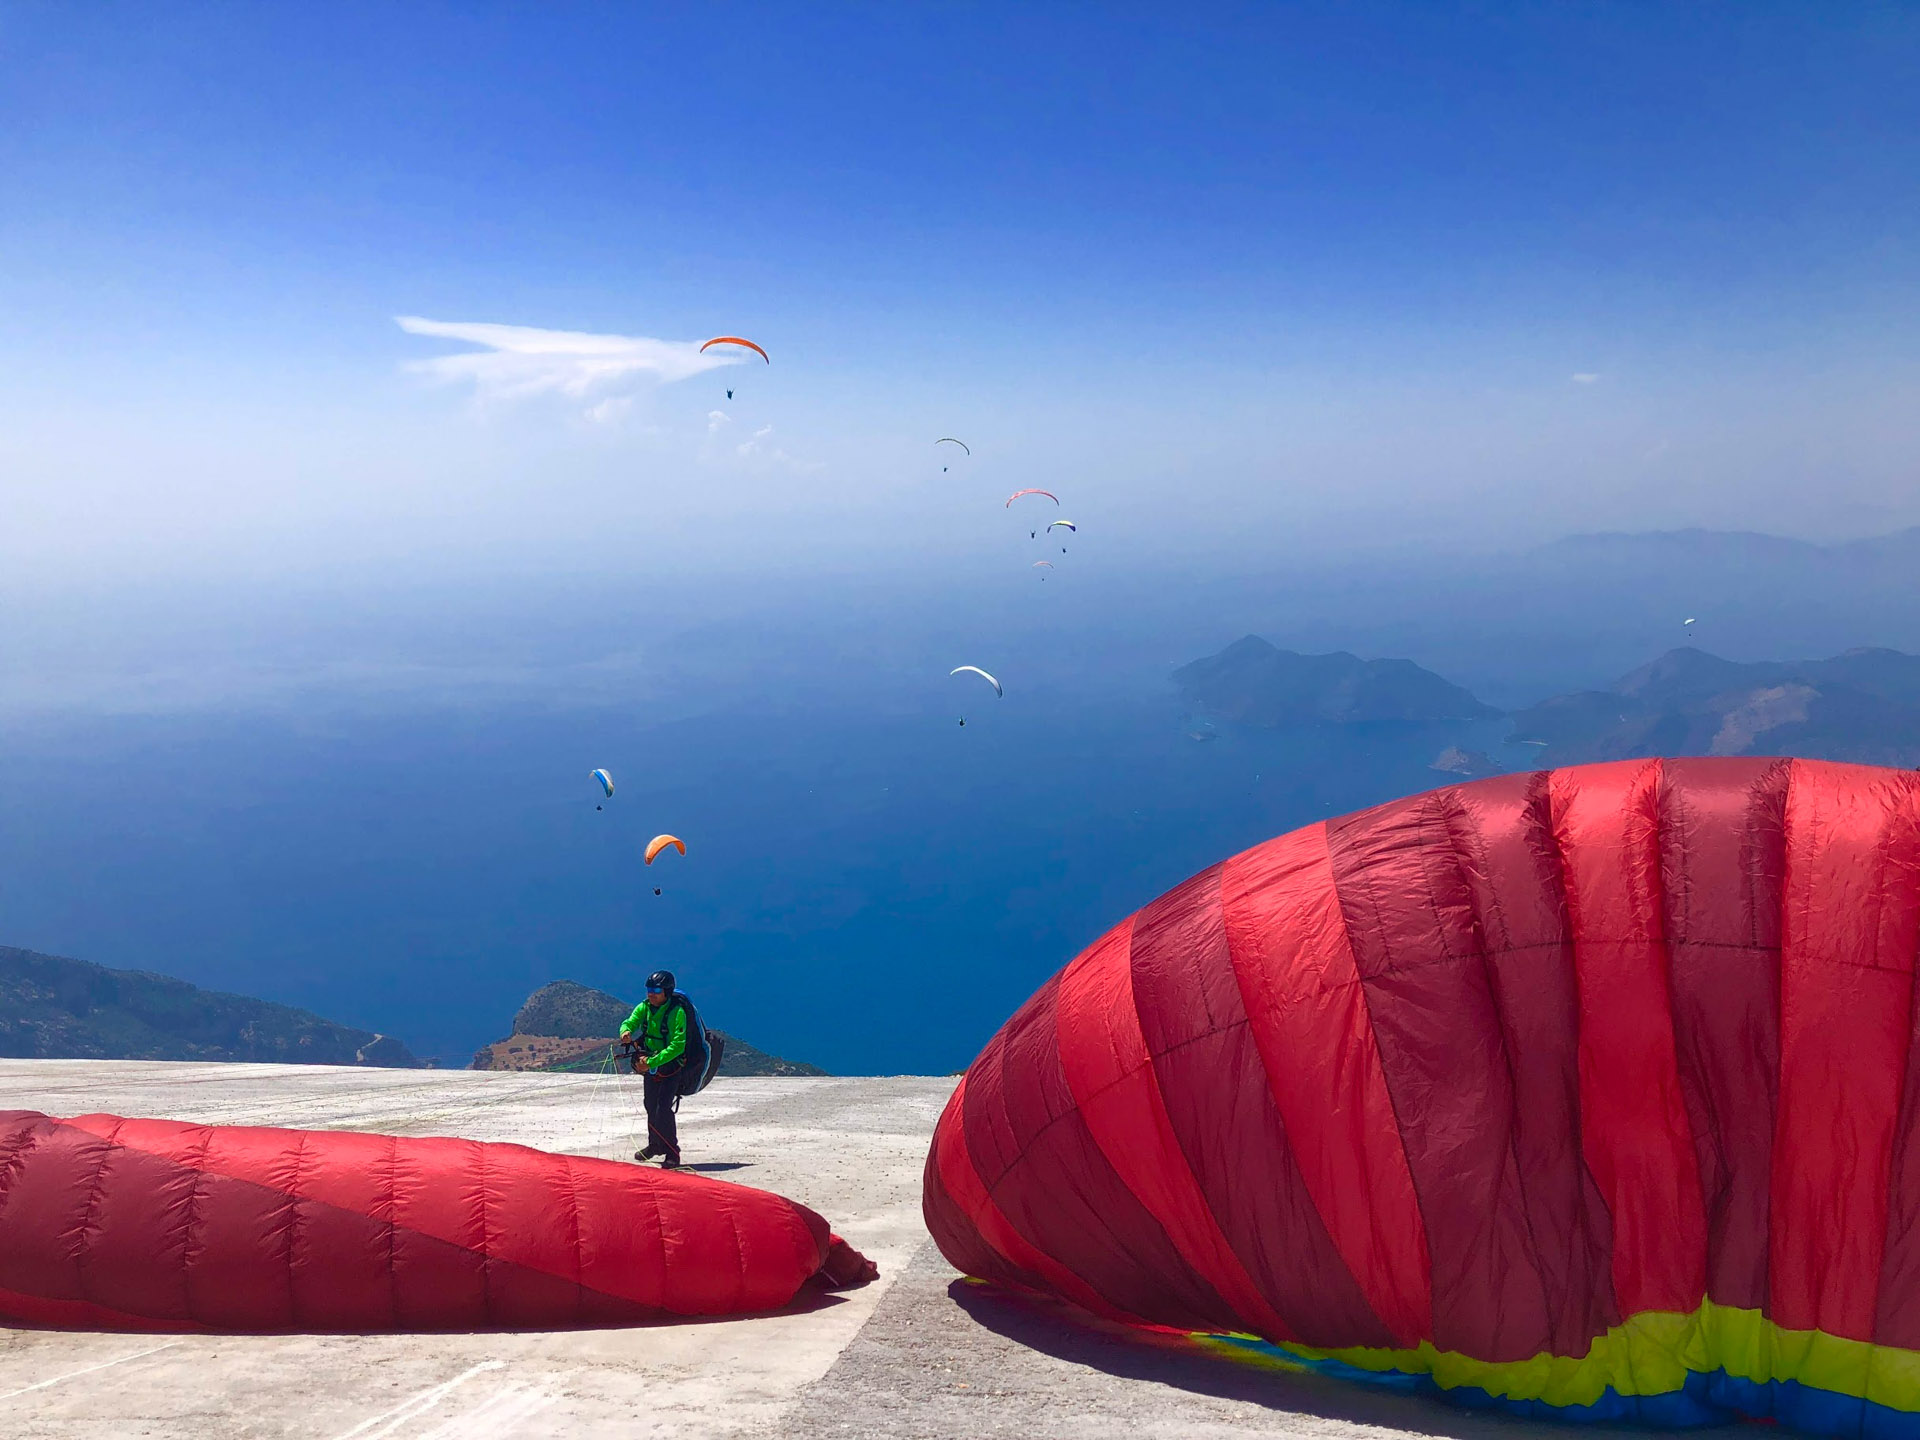 turkey-paragliding-view-of-paragliders